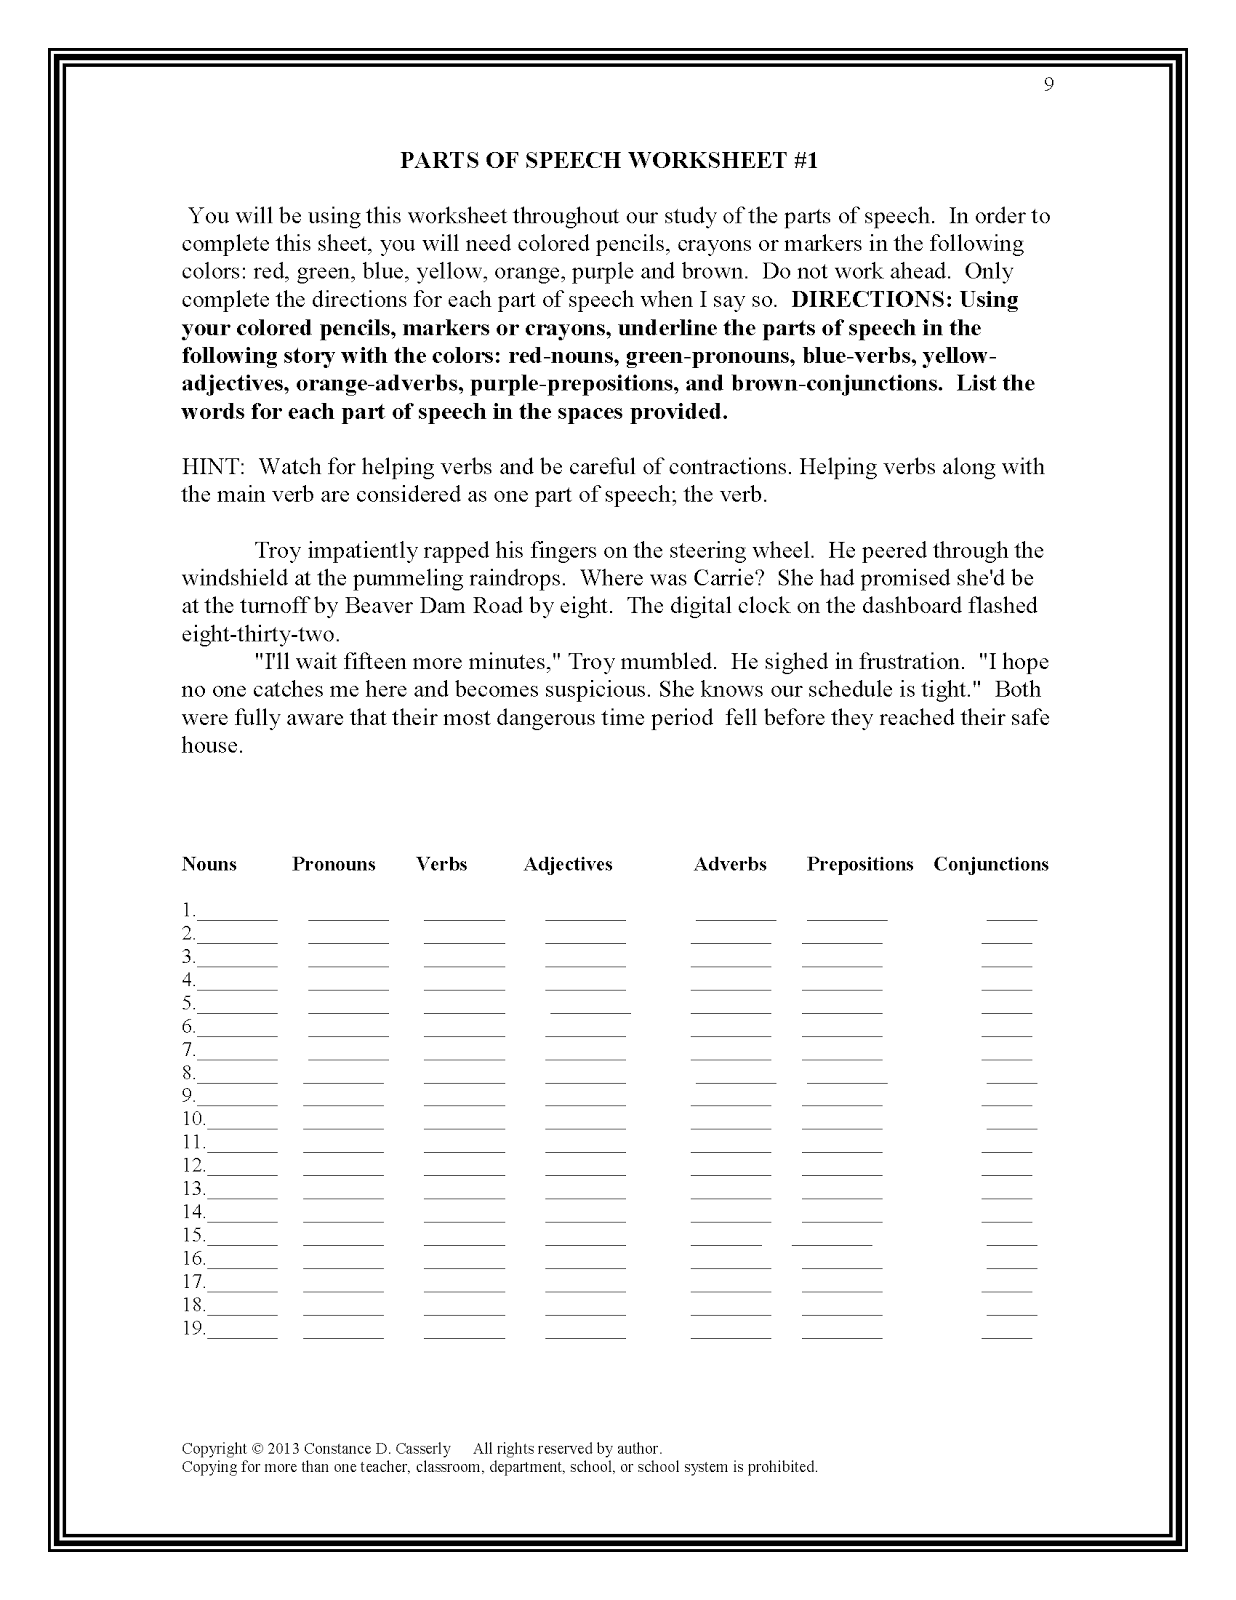 TEACH IT WRITE May 2013 – Grammar Worksheets High School